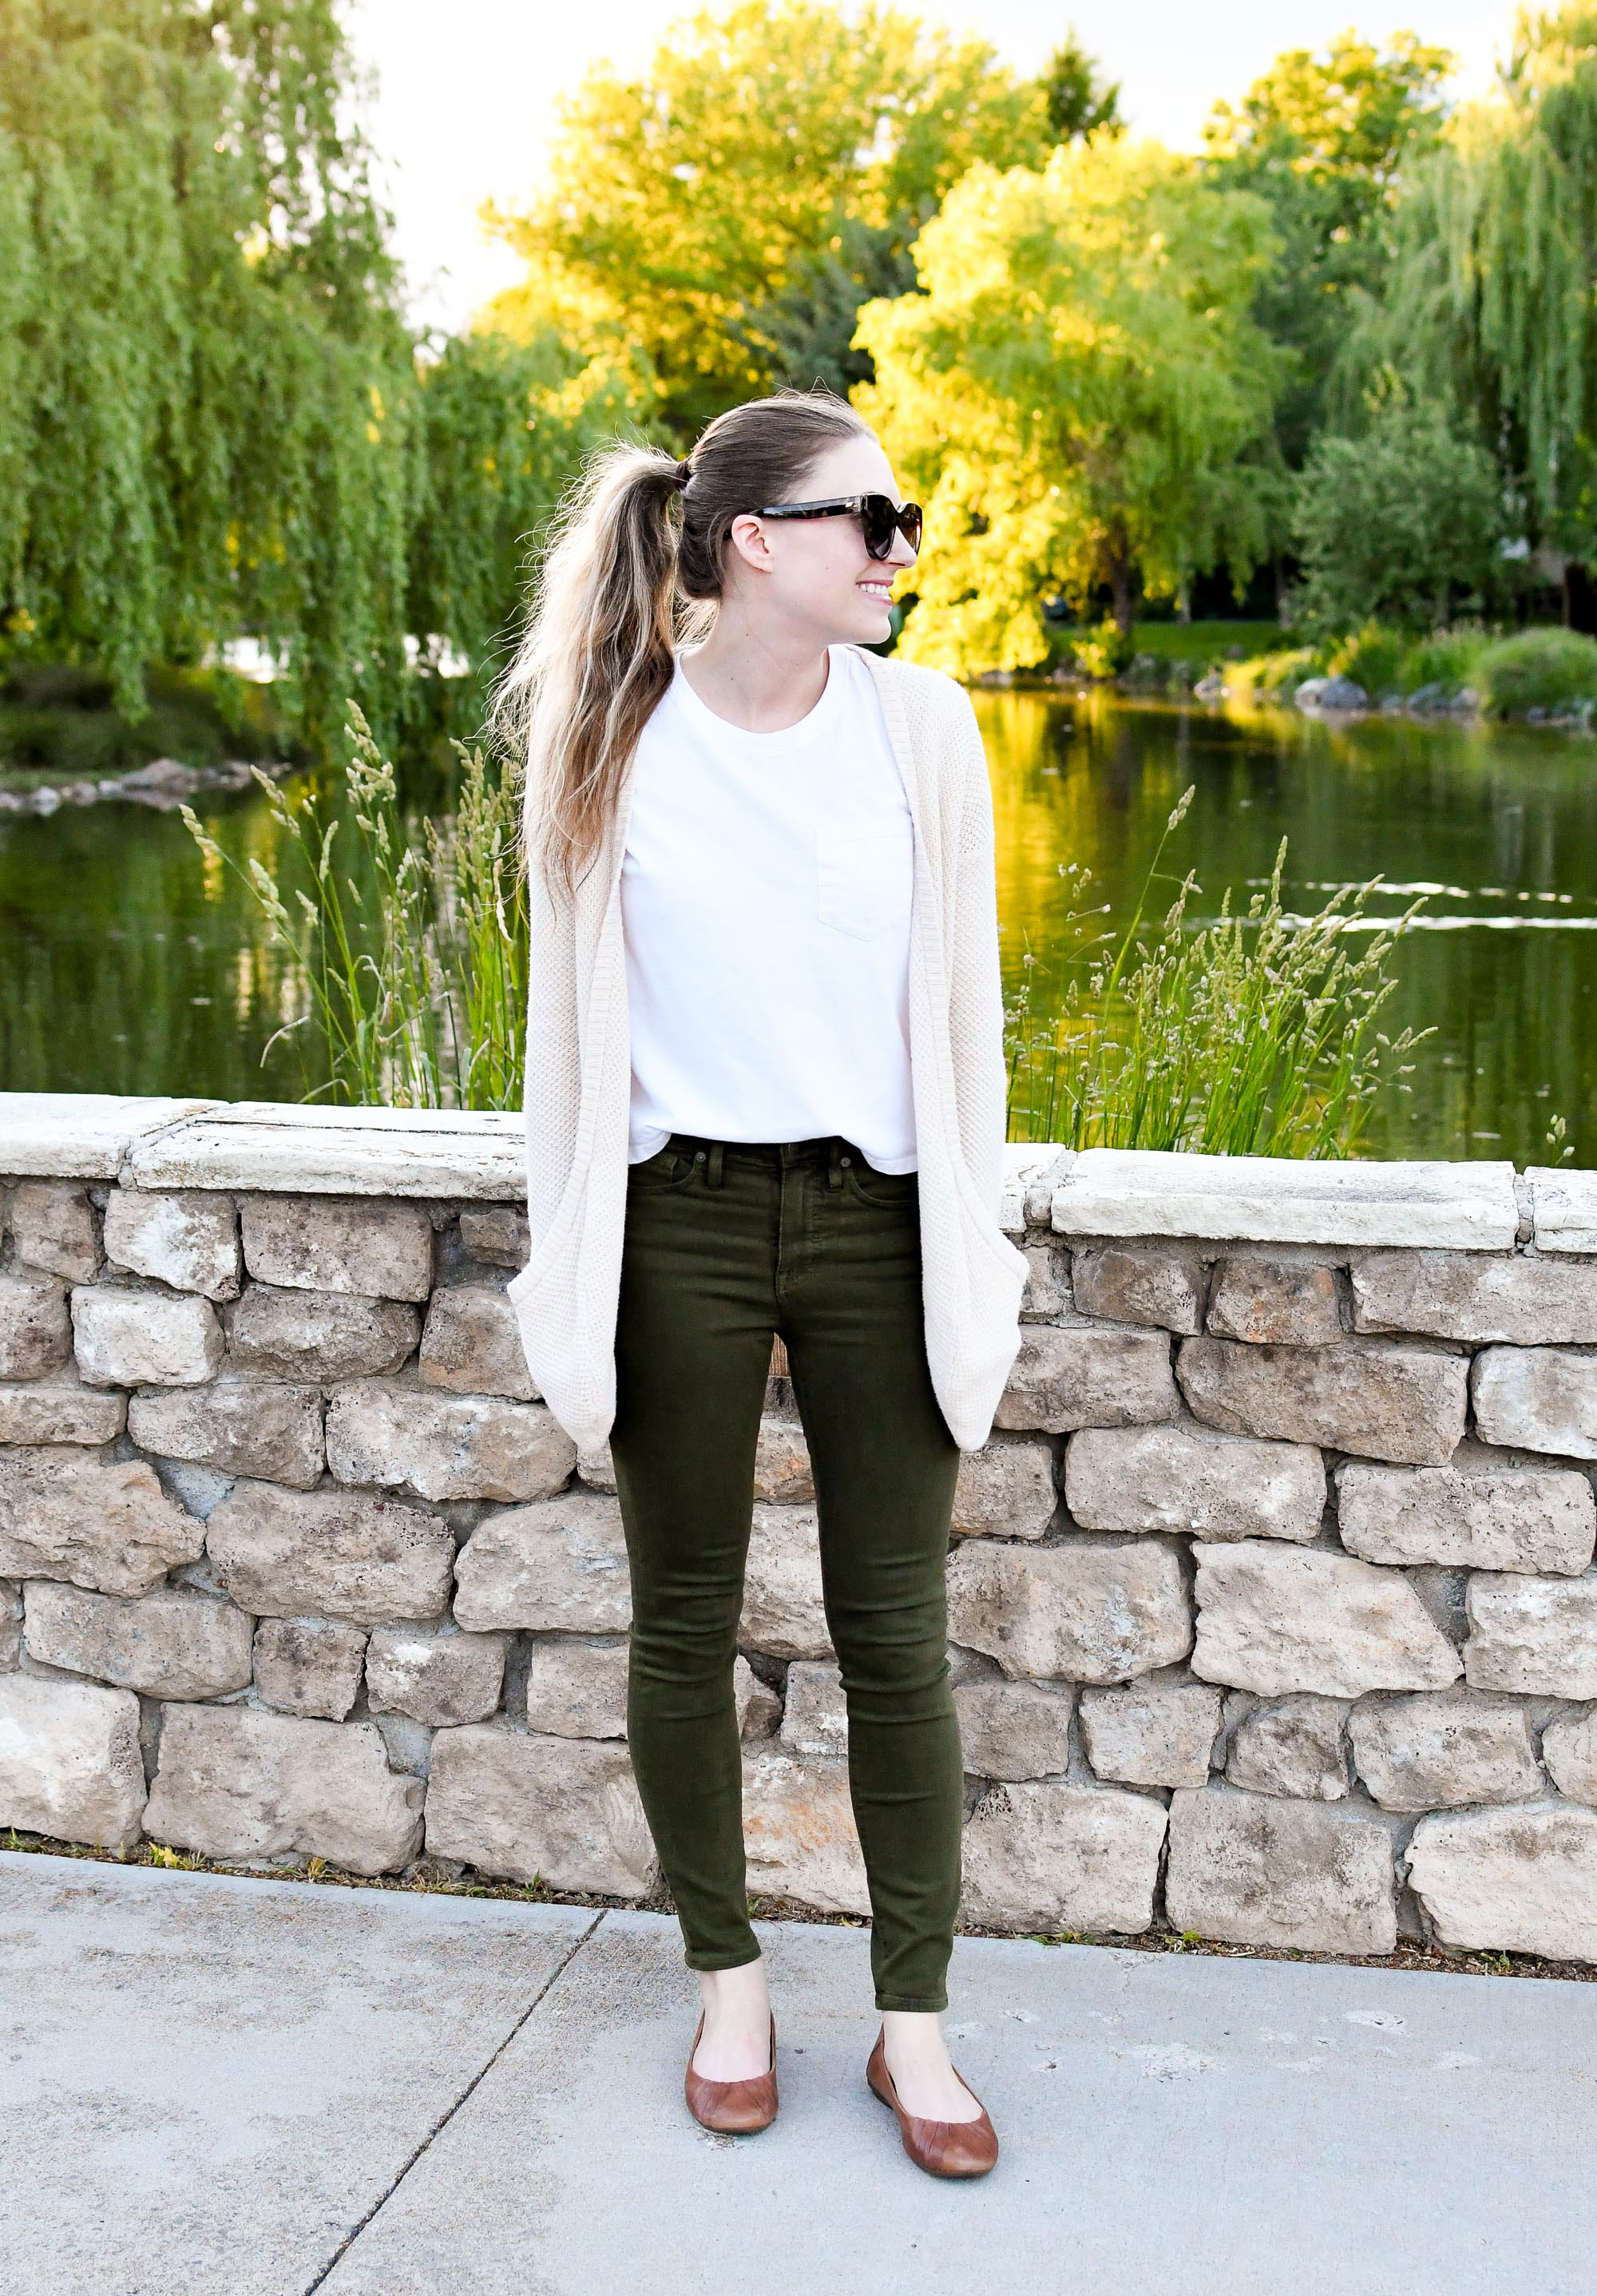 Ivory cardigan, white tee, olive green jeans, brown flats — Cotton Cashmere Cat Hair